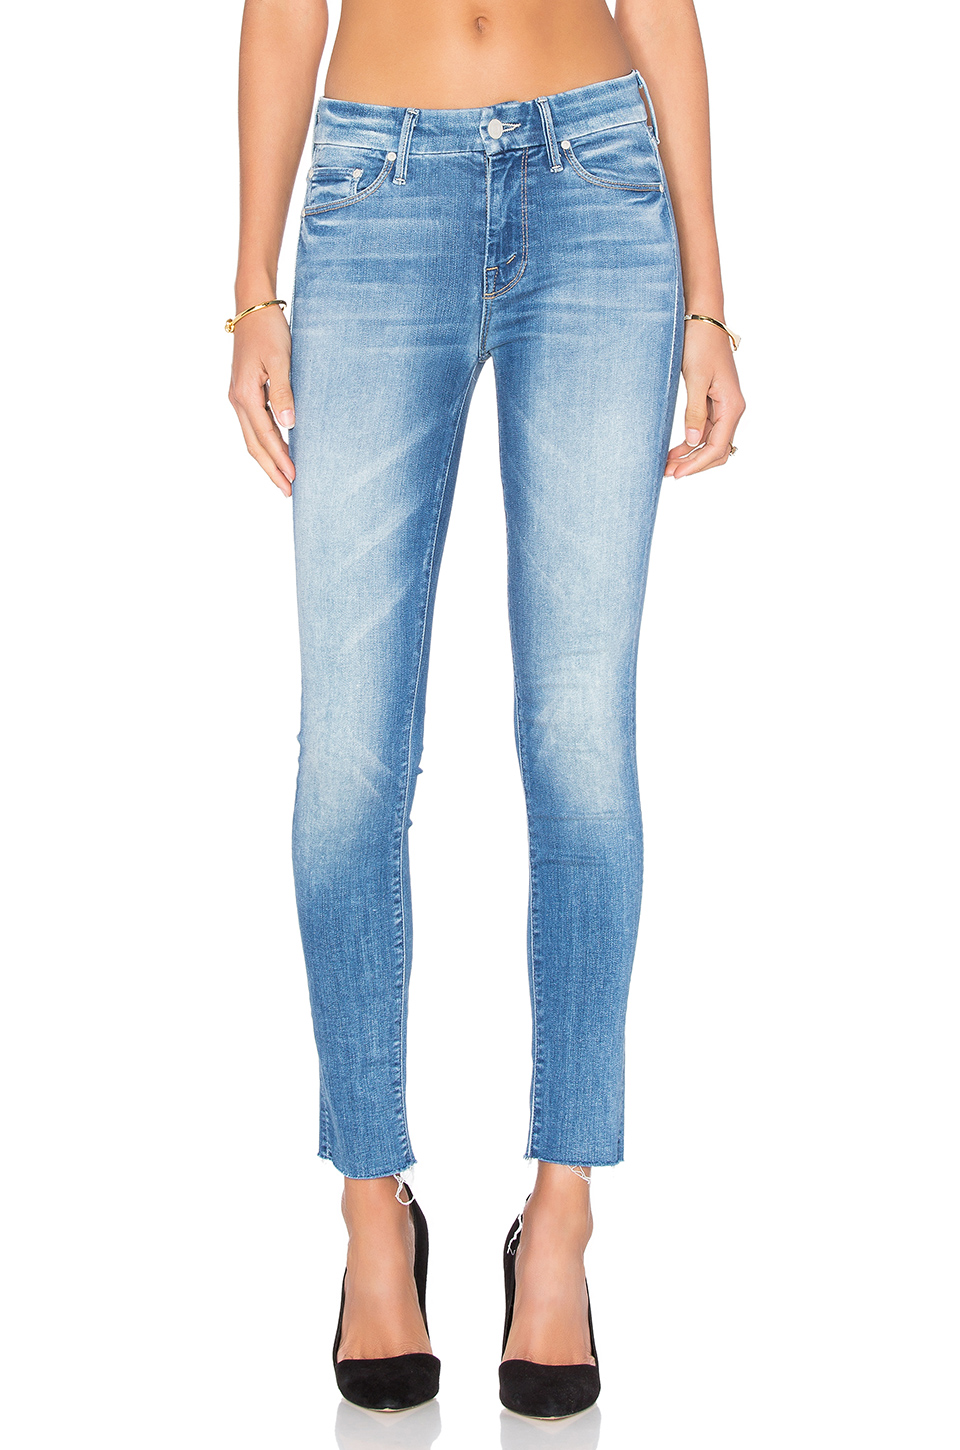 The Looker Ankle Fray Jeans In Birds Of Paradise